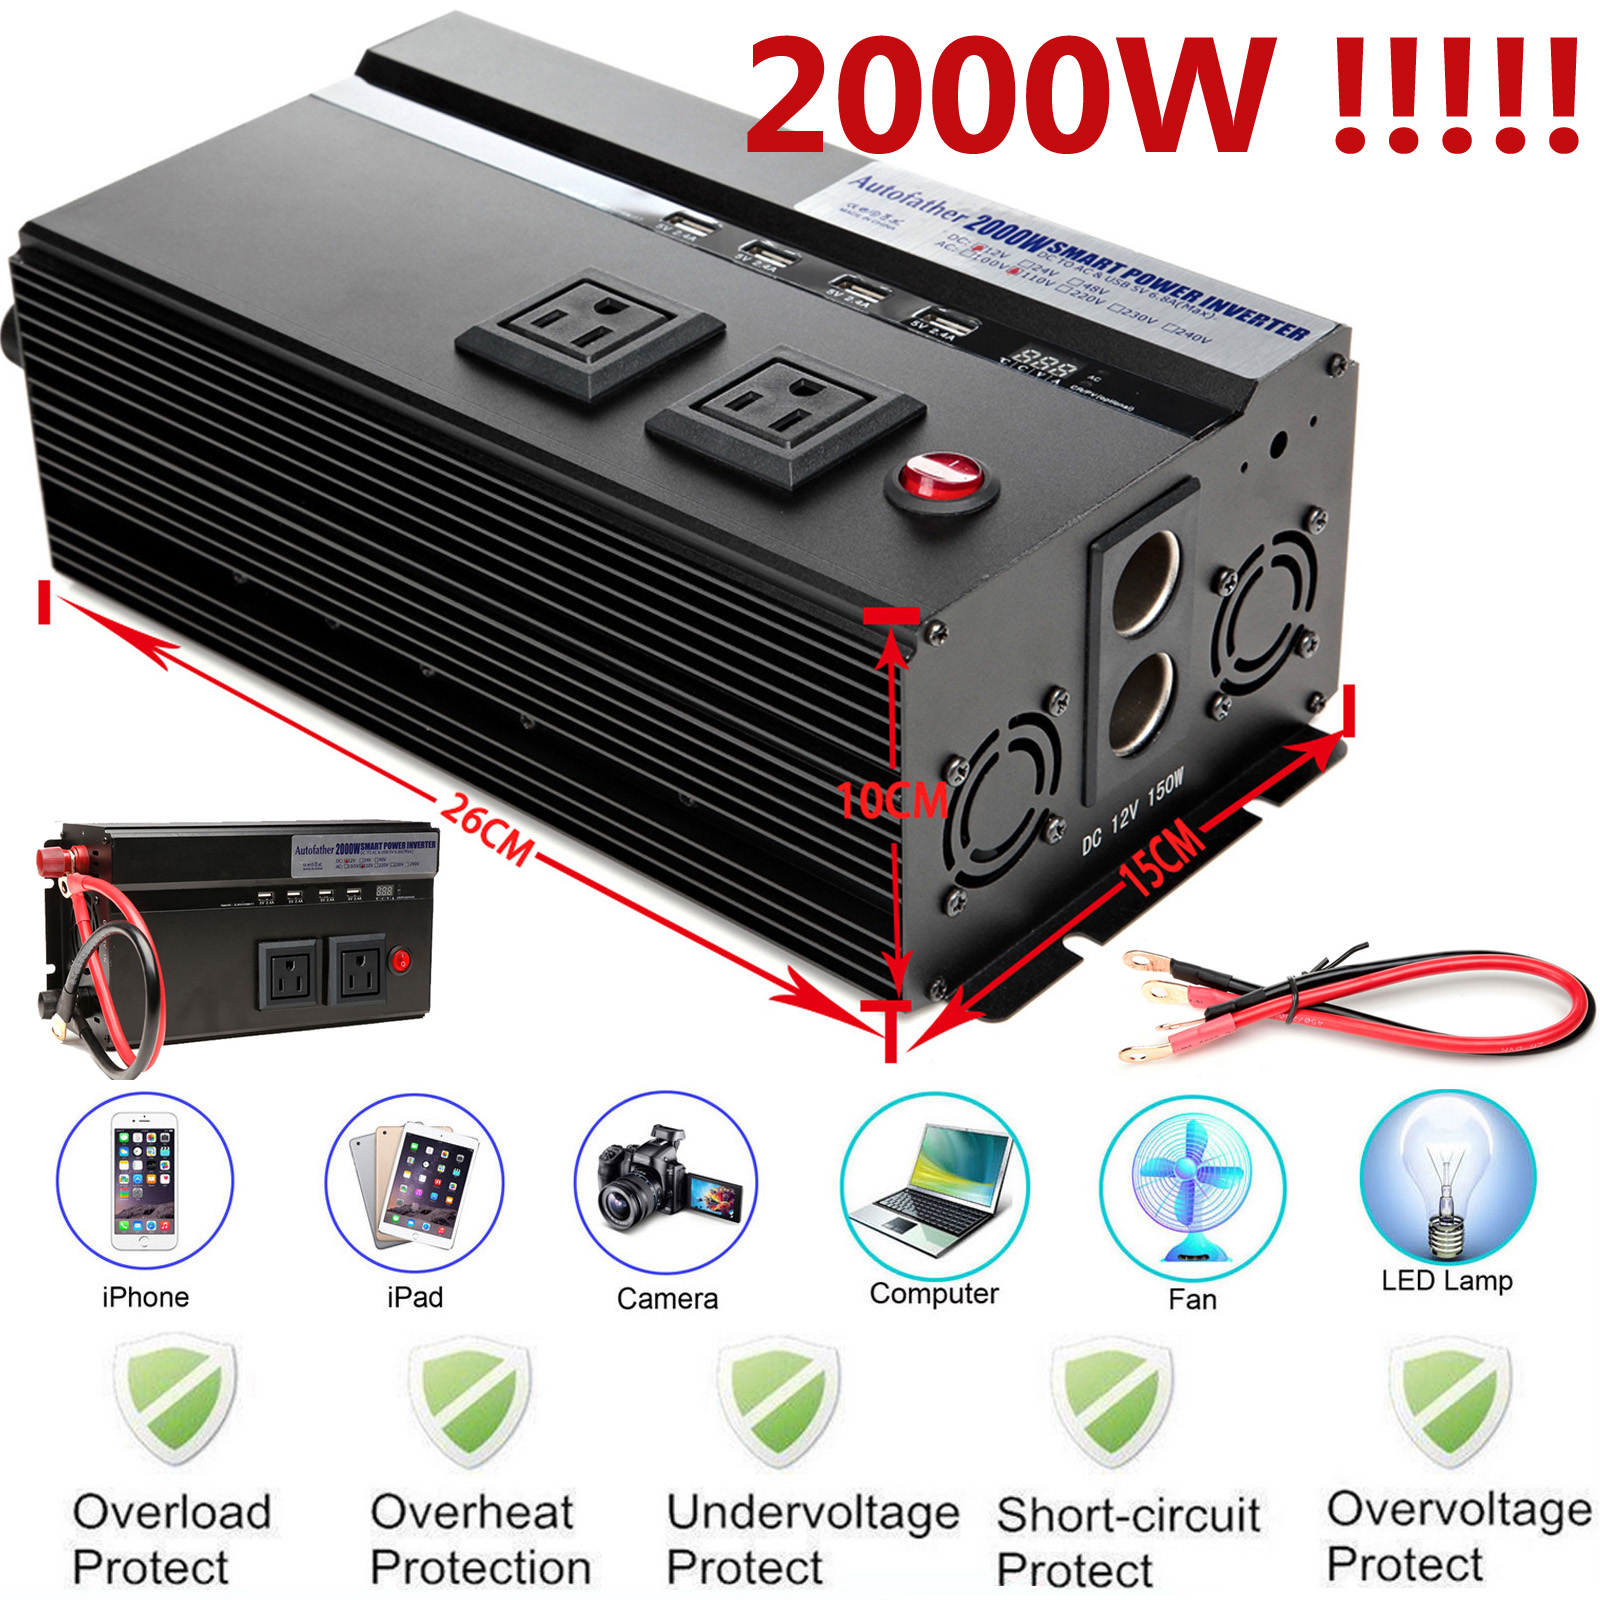 Details About Car Van Boat Camping Outdoor Use Power Inverter Converter 2000w Real High Power